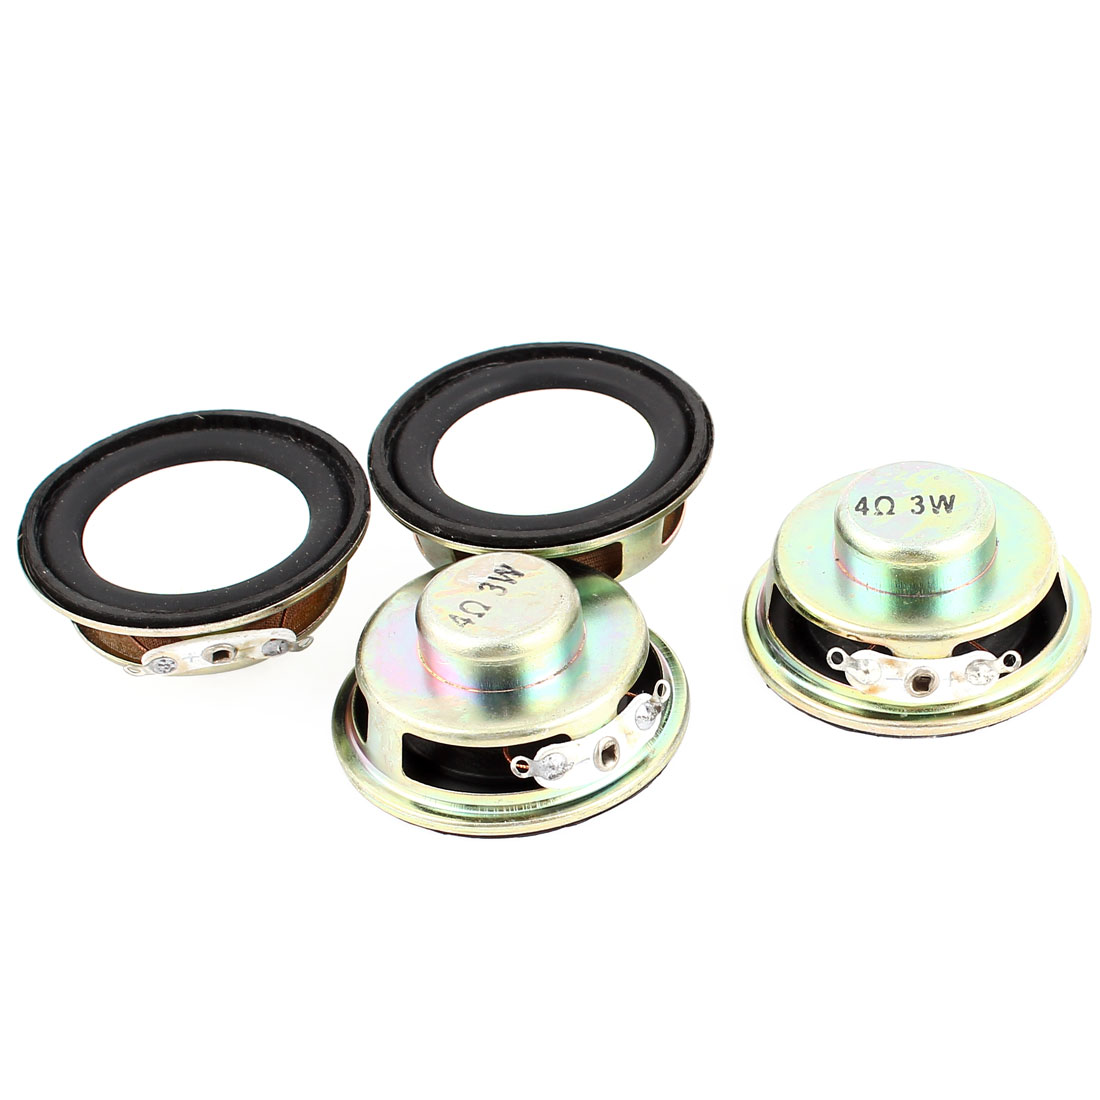 4pcs 4Ohm 3W 40mm Dia Computer Audio Woofer Speaker Horn